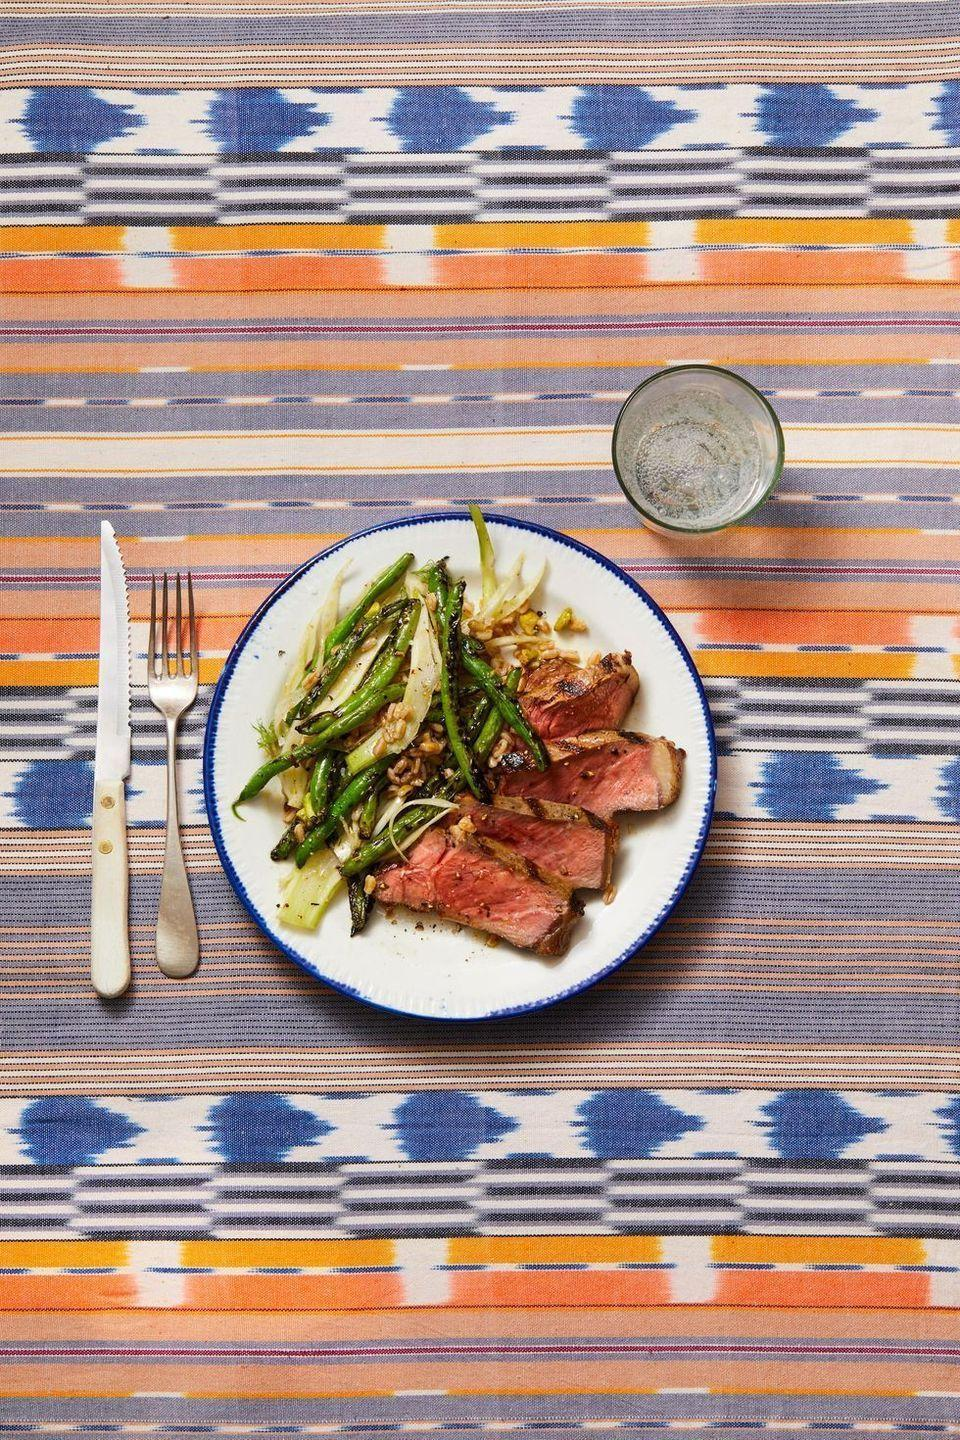 """<p>Fire up the grill to char green beans and steak for the ultimate summer dinner.</p><p><em><a href=""""https://www.goodhousekeeping.com/food-recipes/a28611907/steak-with-grilled-green-beans-fennel-and-farro-recipe/"""" rel=""""nofollow noopener"""" target=""""_blank"""" data-ylk=""""slk:Get the recipe for Steak with Grilled Green Beans, Fennel & Farro »"""" class=""""link rapid-noclick-resp"""">Get the recipe for Steak with Grilled Green Beans, Fennel & Farro »</a></em> </p>"""